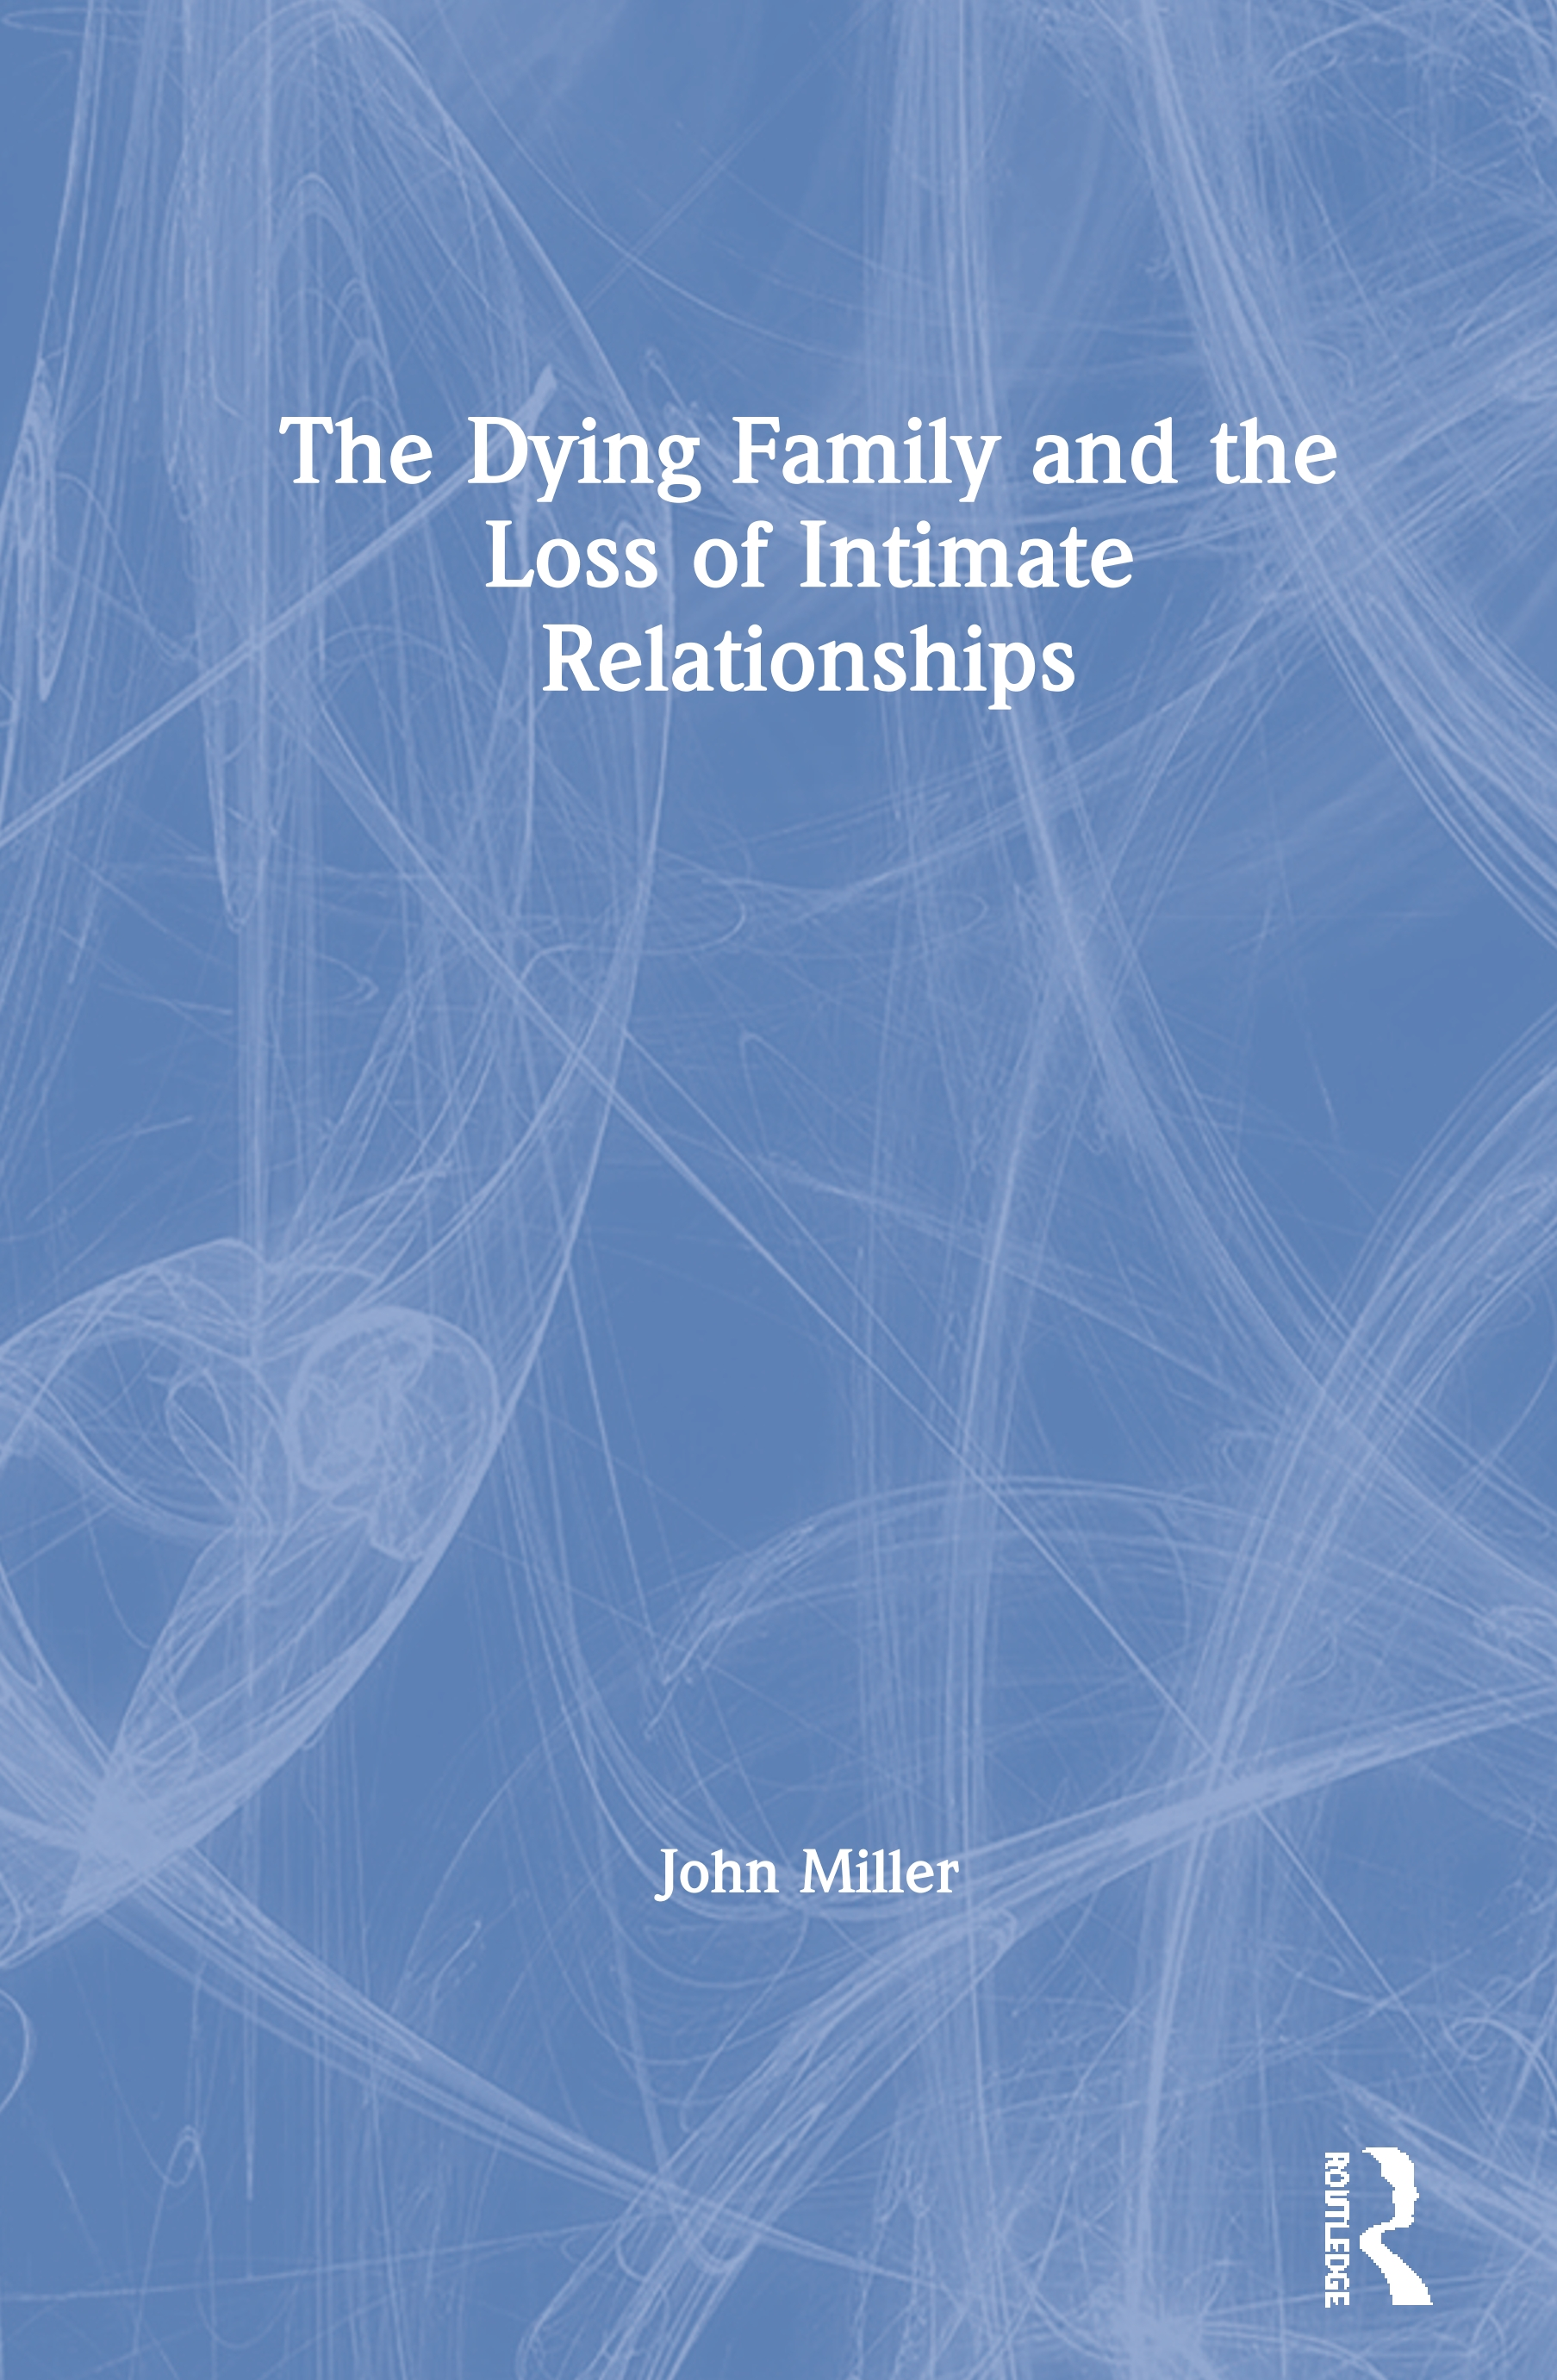 The Dying Family and the Loss of Intimate Relationships: 1st Edition (Paperback) book cover